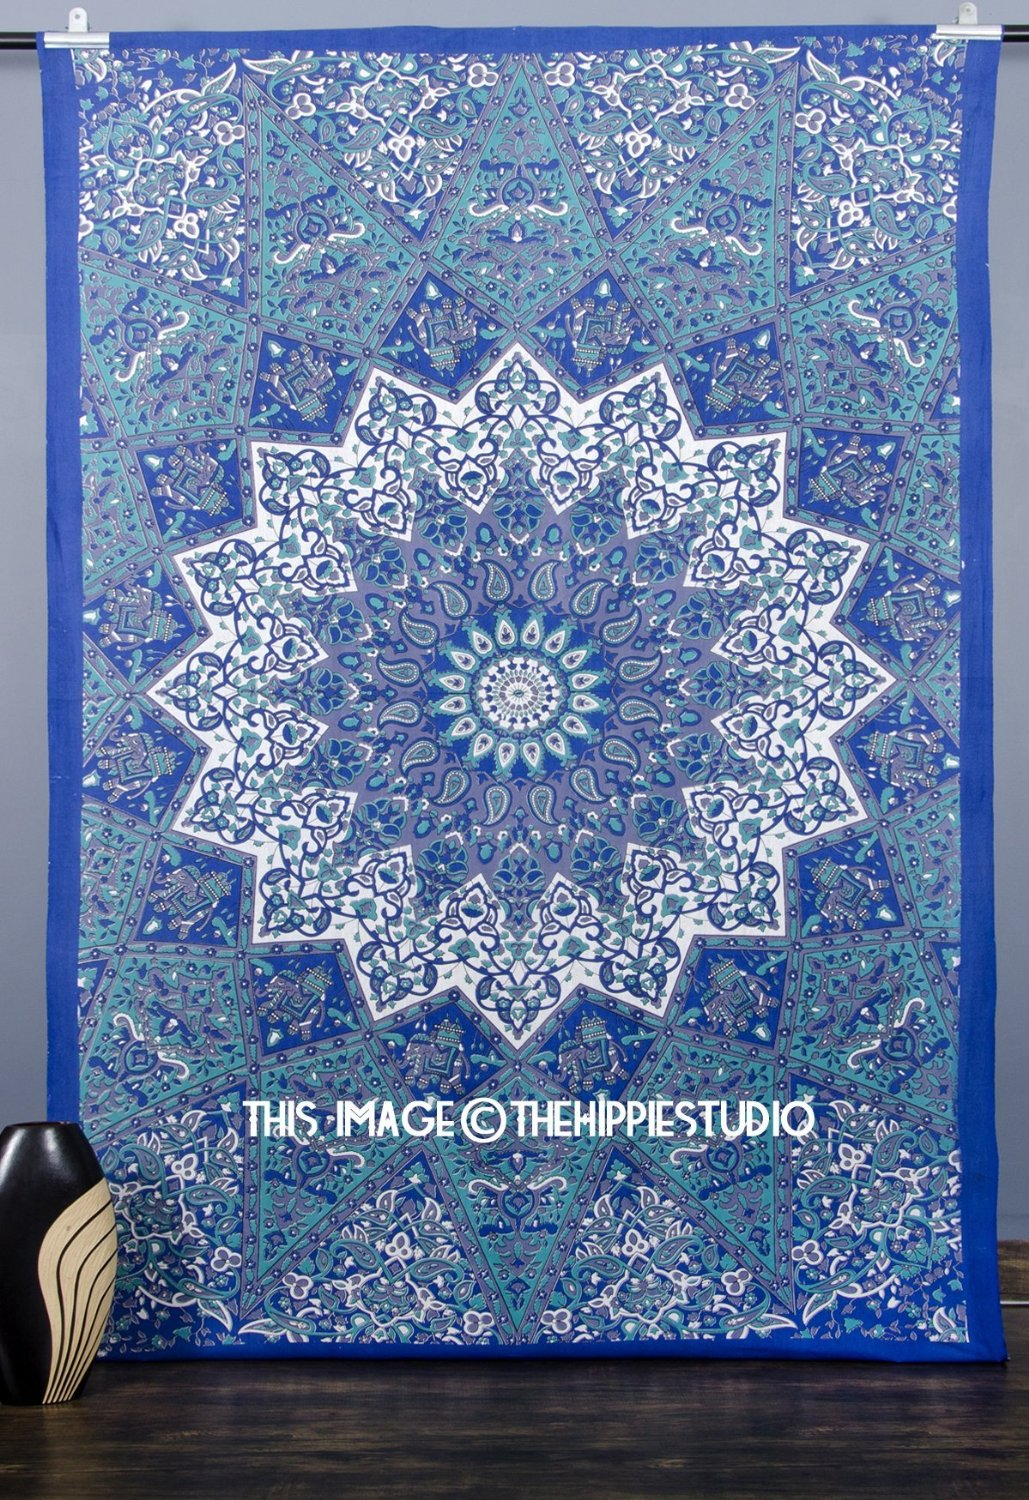 Kaleidoscopic Star Tapestry, Intricate Floral Design Indian Bedspread, Hippie Mandala Tapestries Wall Hangings, Boho Tapestry Throw, Tapestries for Dorms